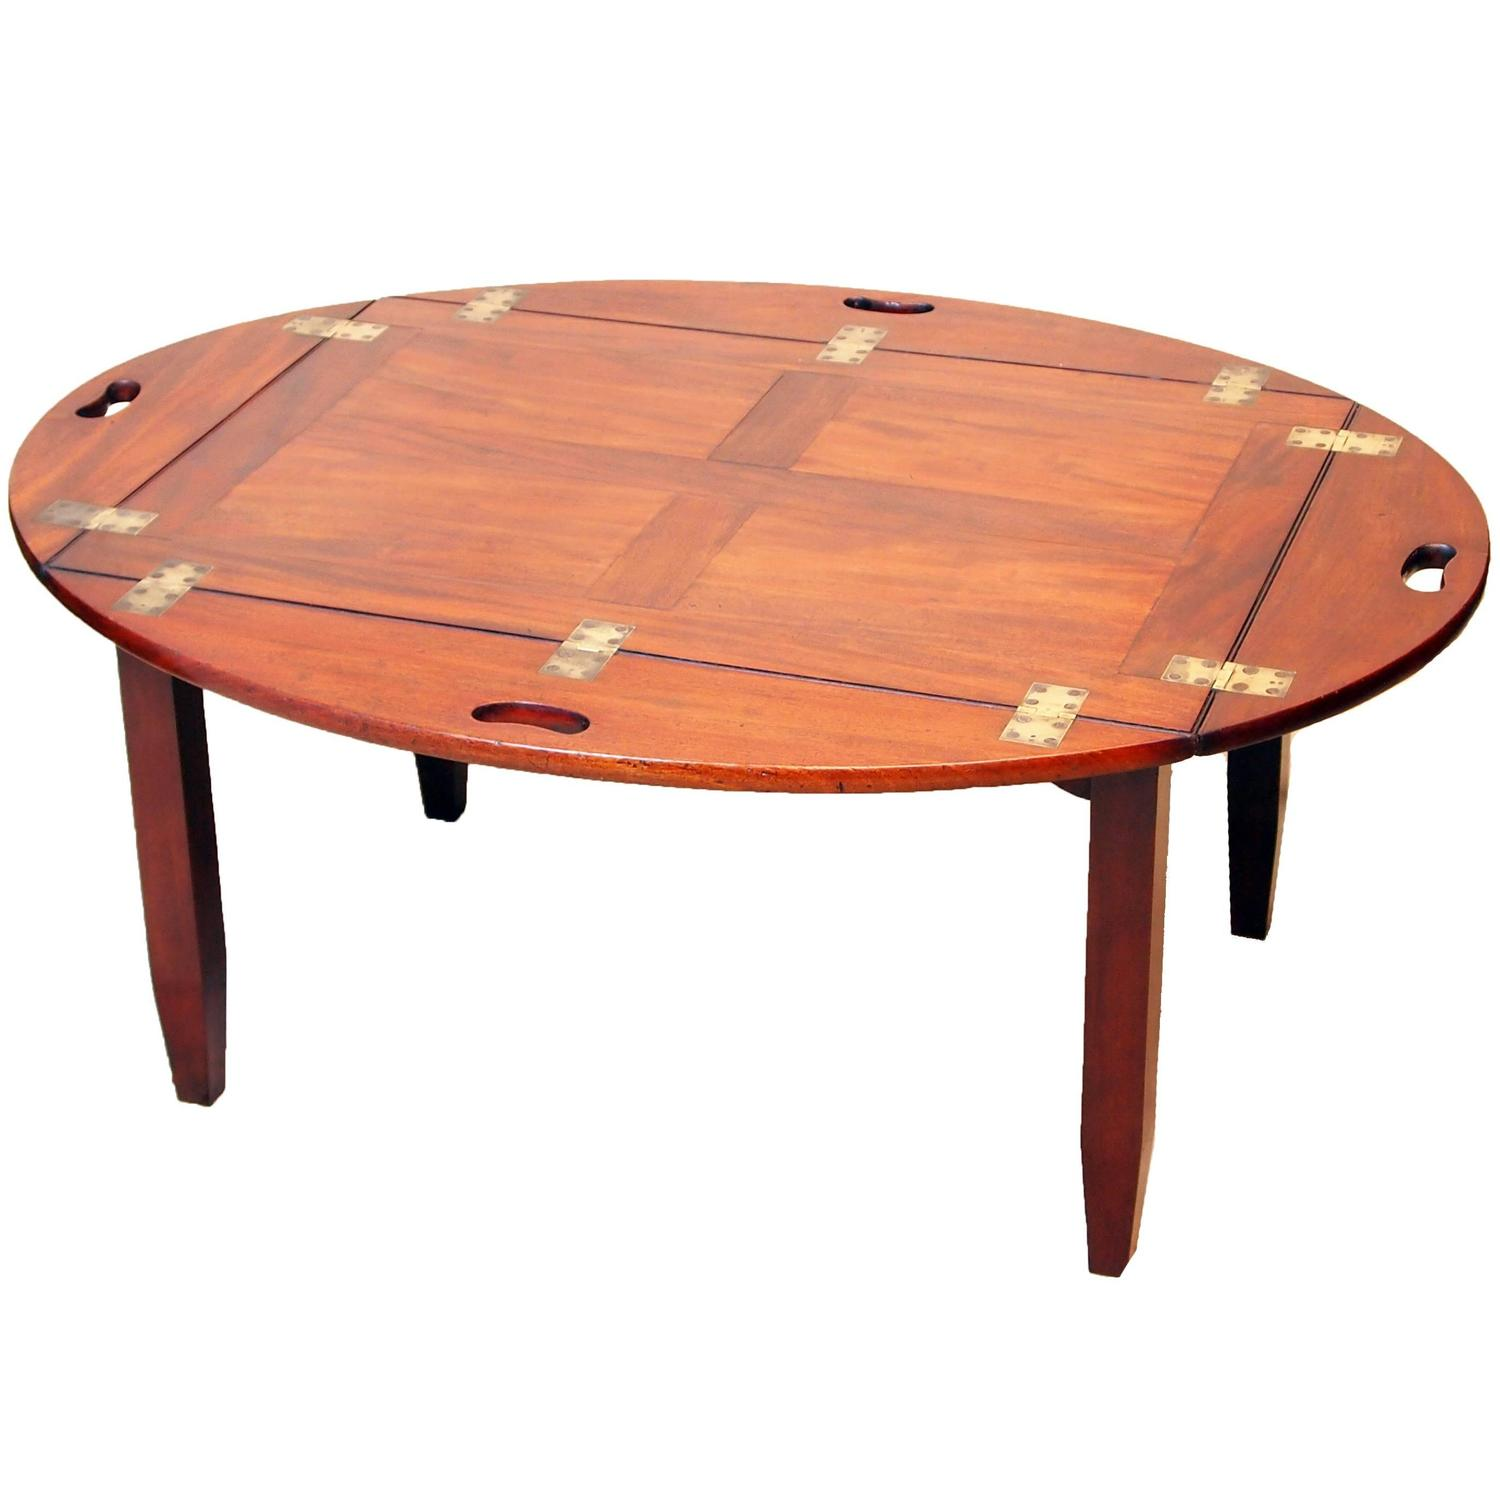 Vintage Butler Coffee Table: Antique Georgian Oval Butlers Tray On Stand At 1stdibs